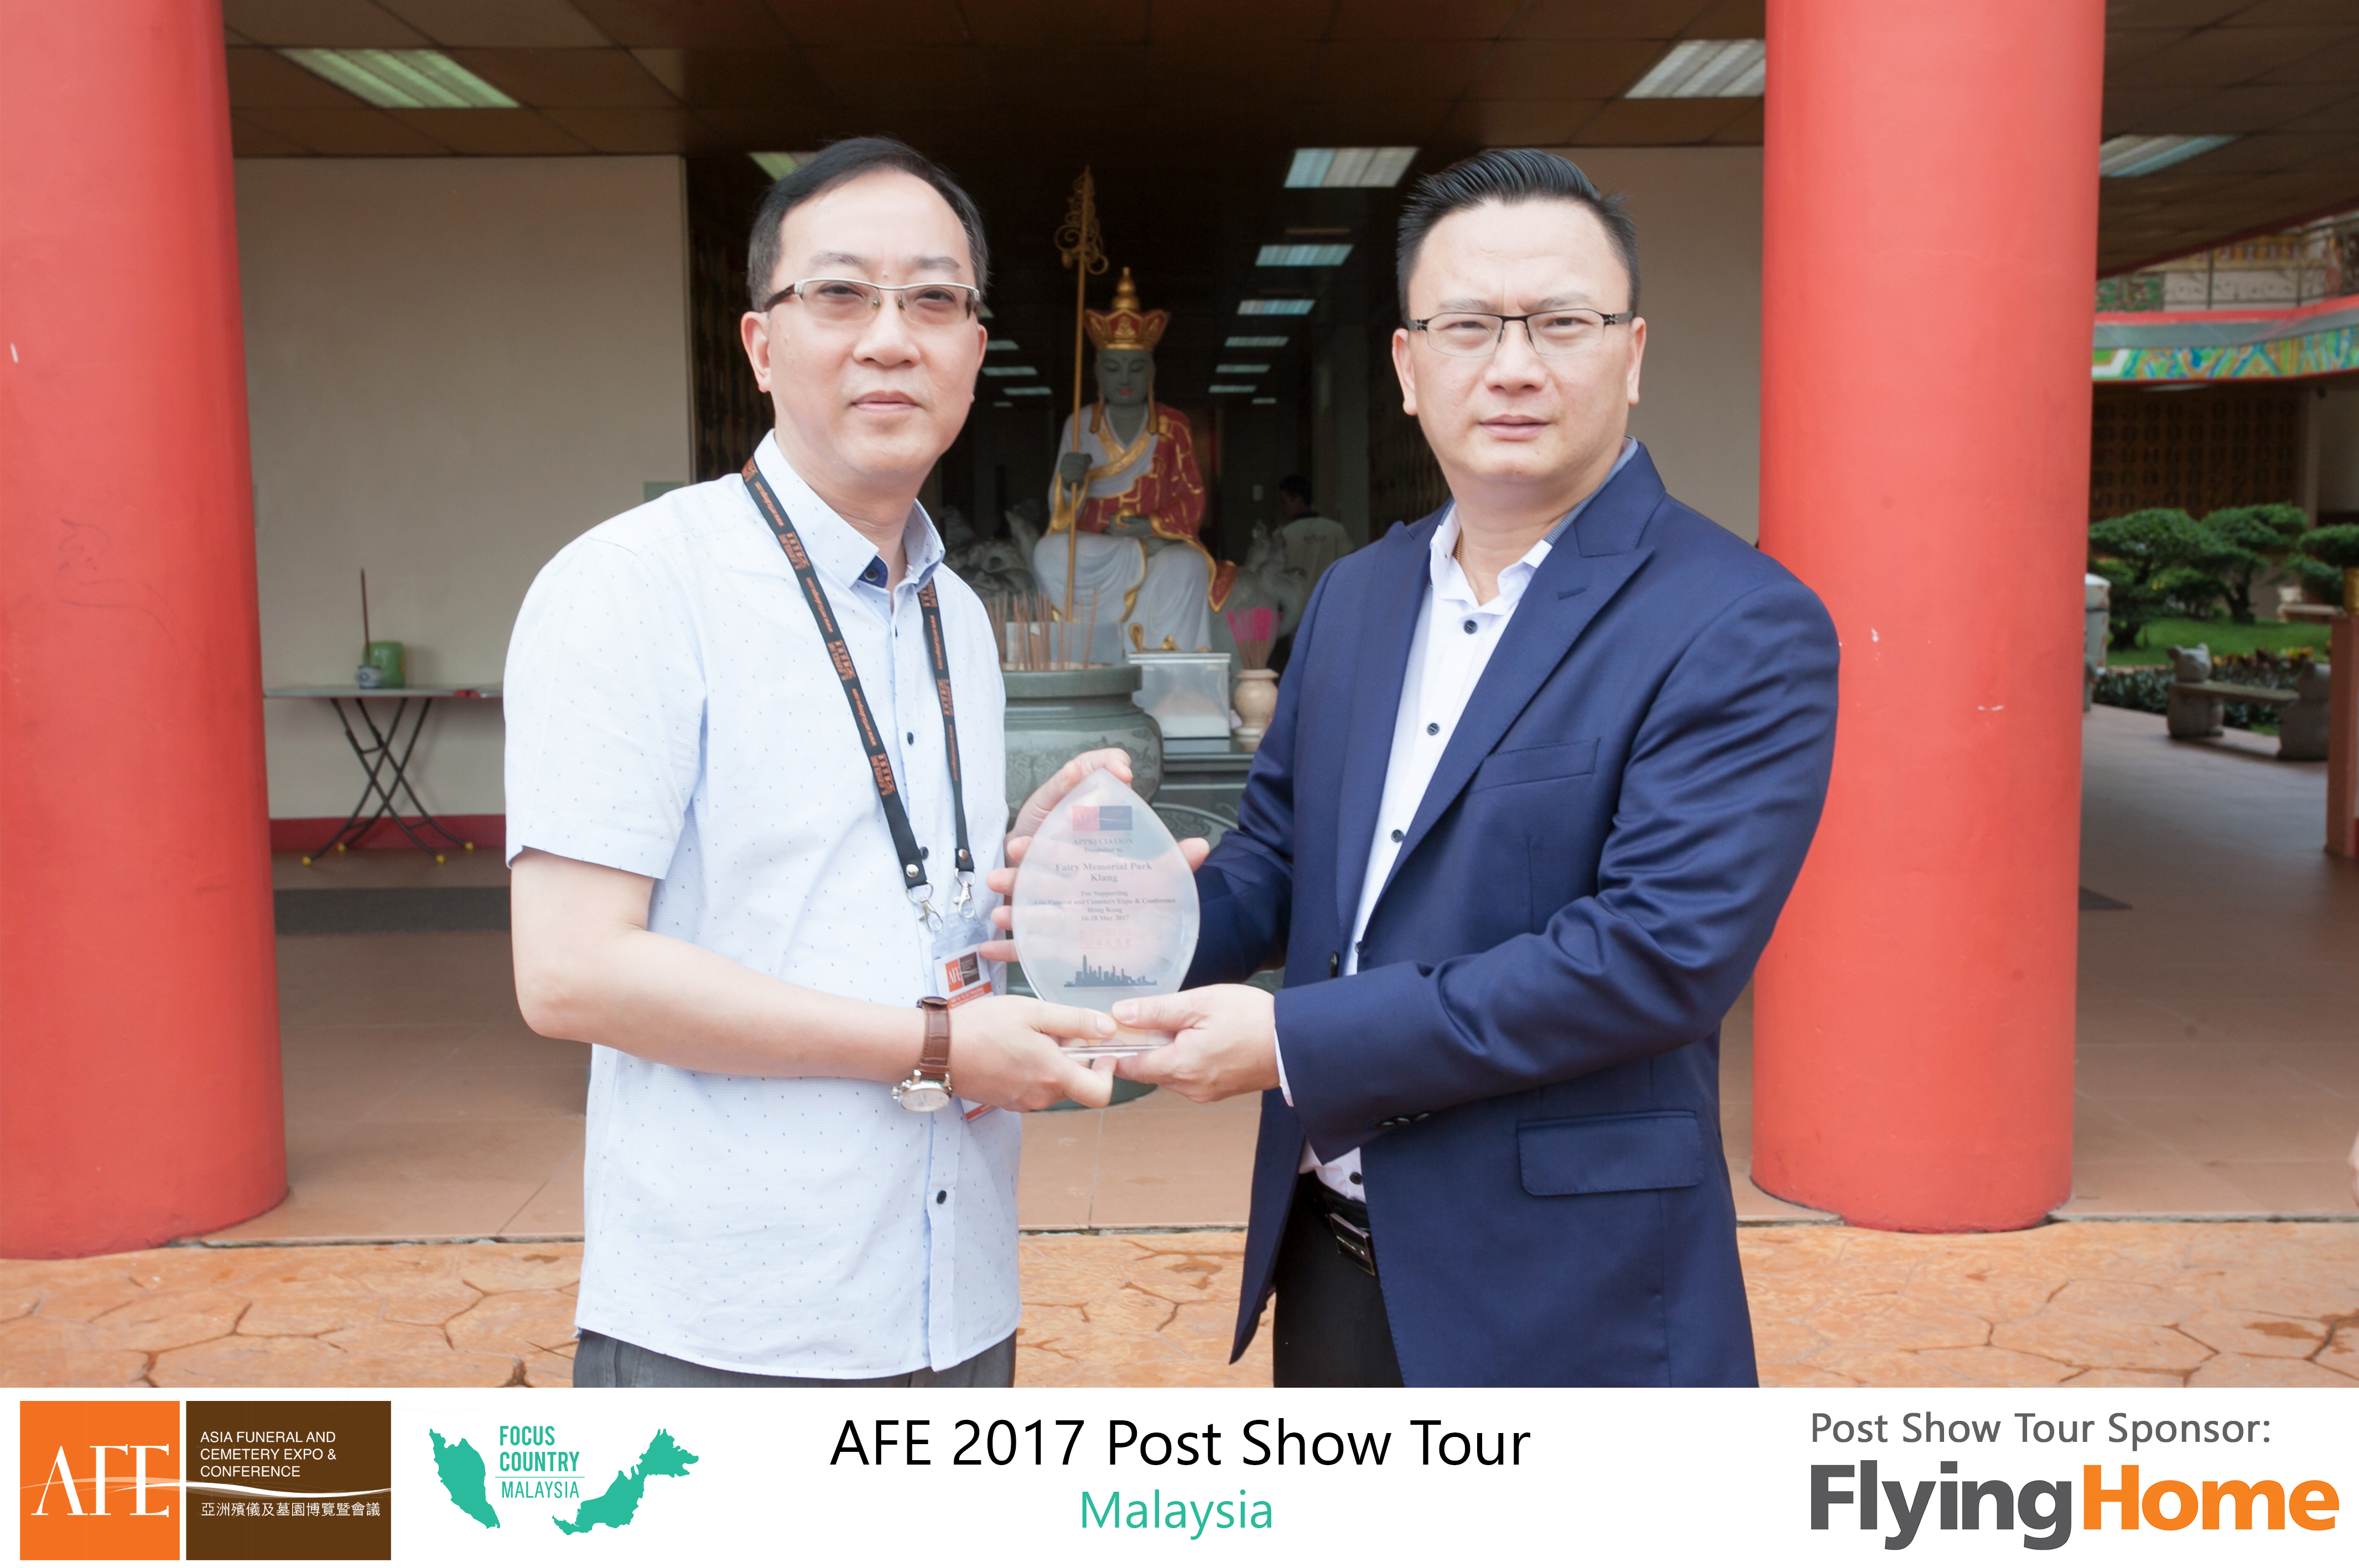 AFE Post Show Tour 2017 Day 4 - 14